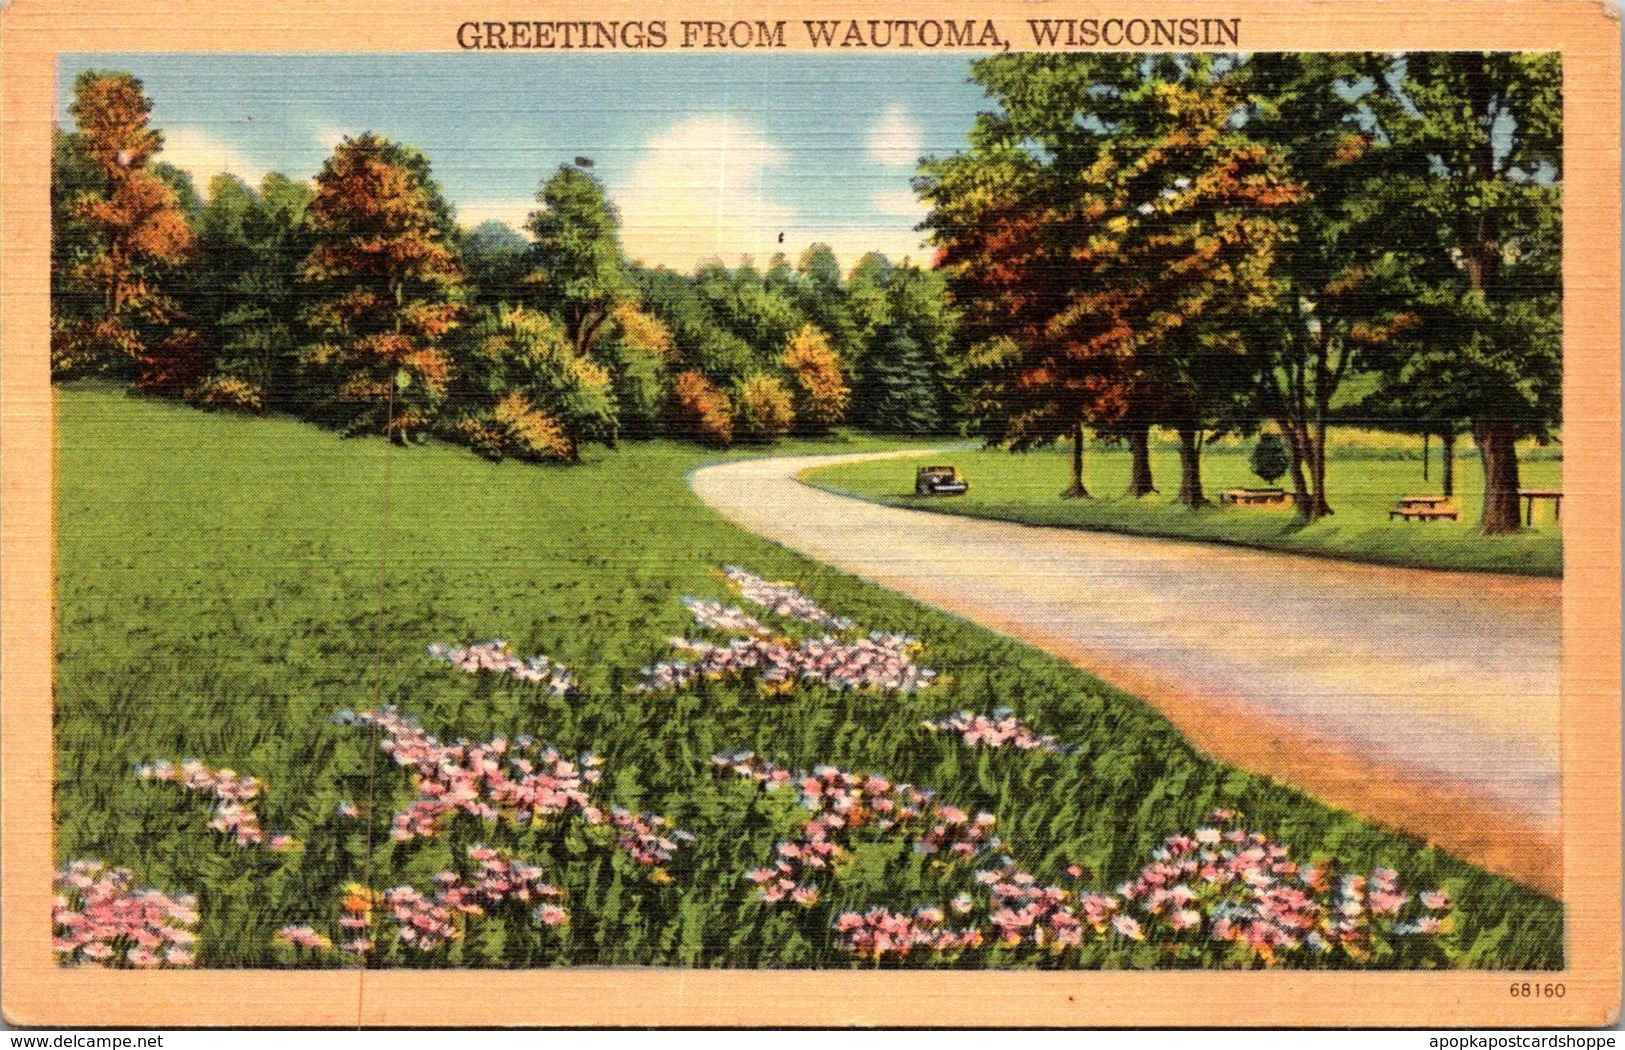 Wisconsin Greetings From Wautoma 1955